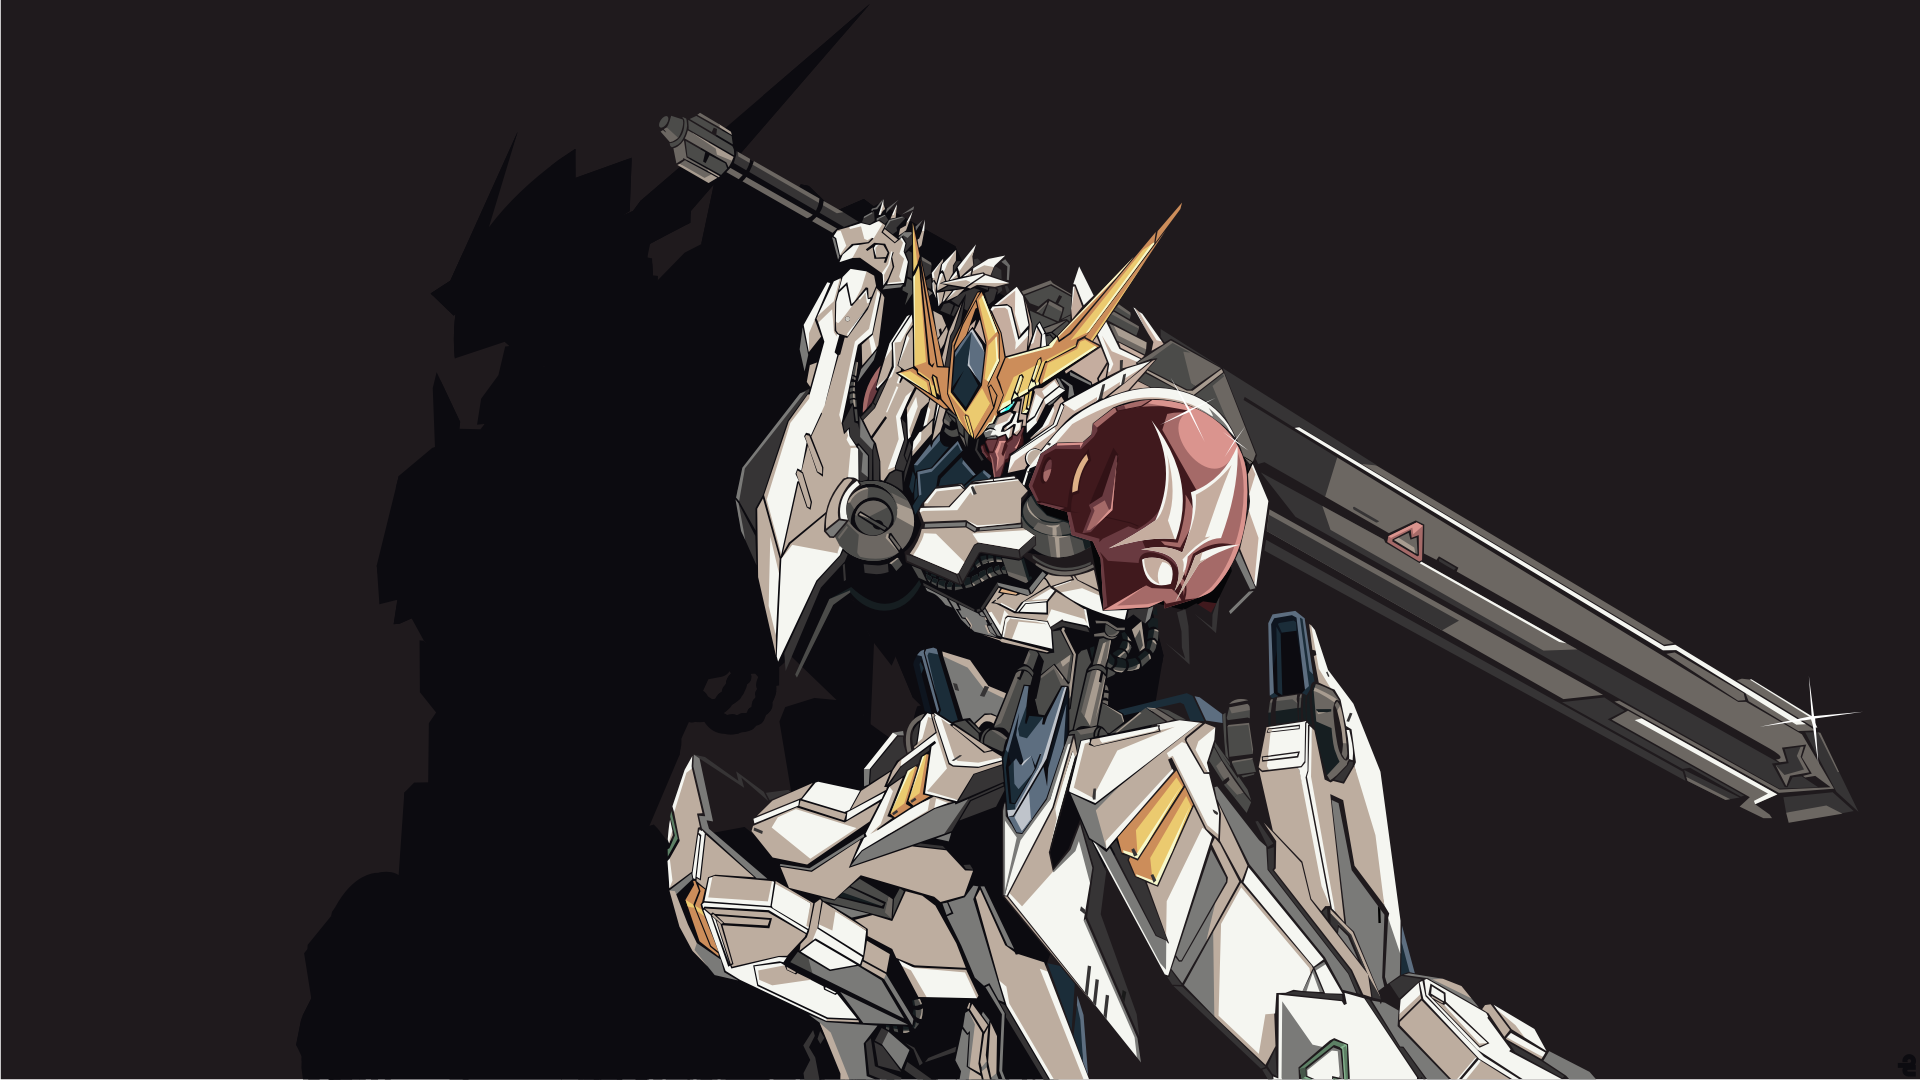 Mobile Suit Gundam Iron Blooded Orphans Hd Wallpaper Background